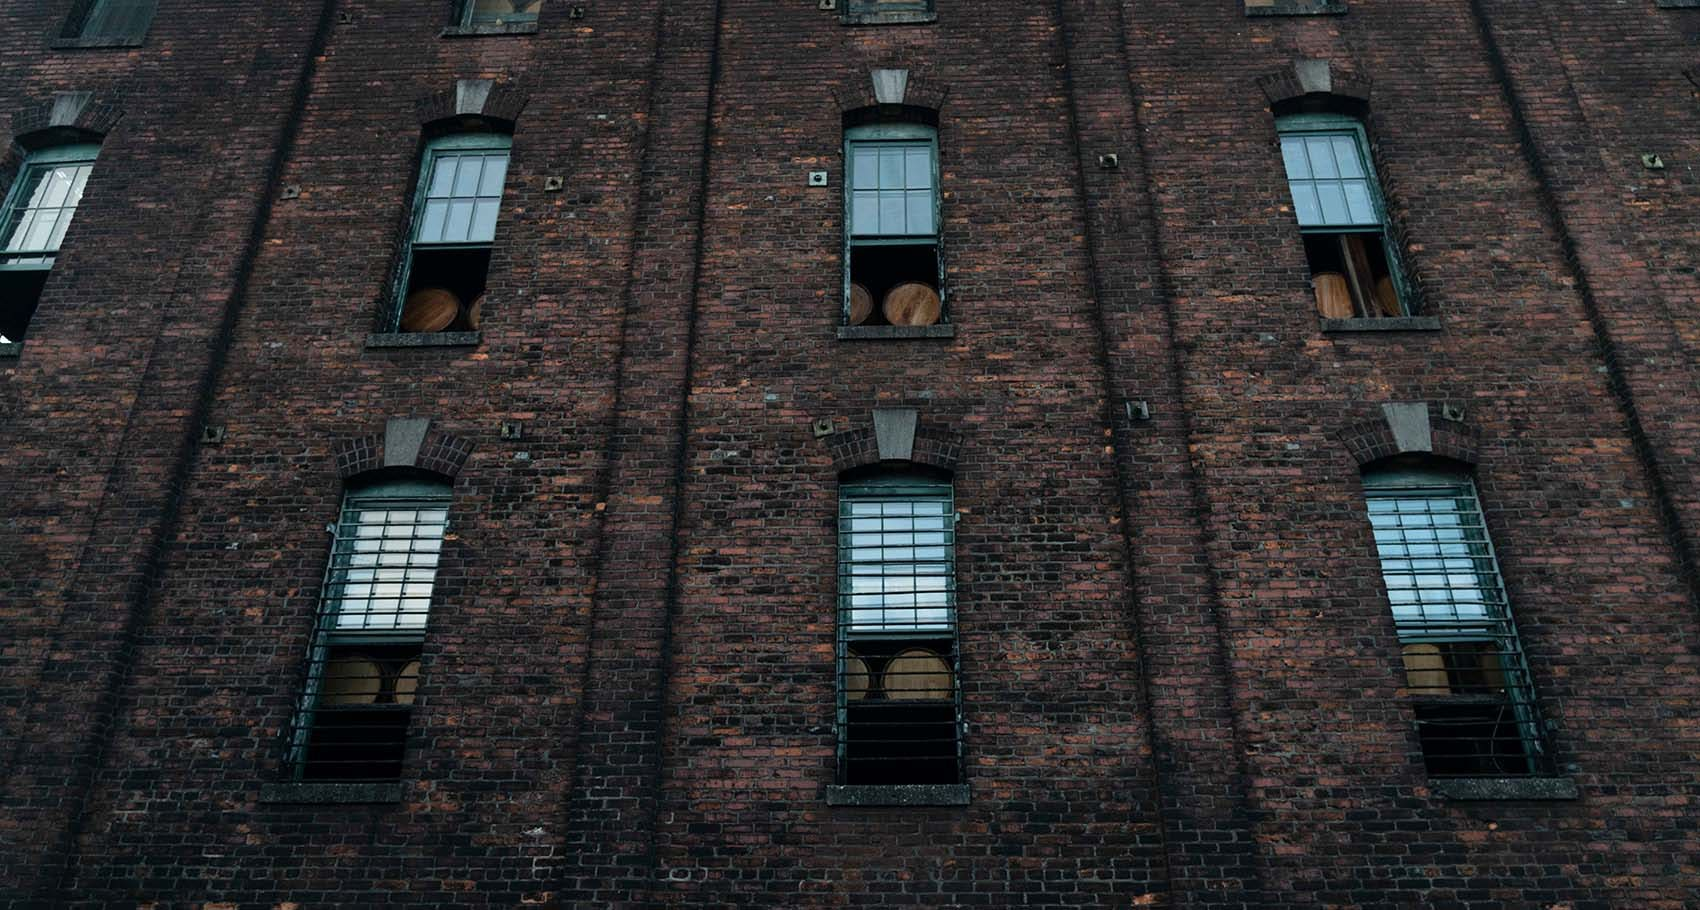 Buffalo Trace Distillery view of outside brick building with bourbon aging in barrels in windows